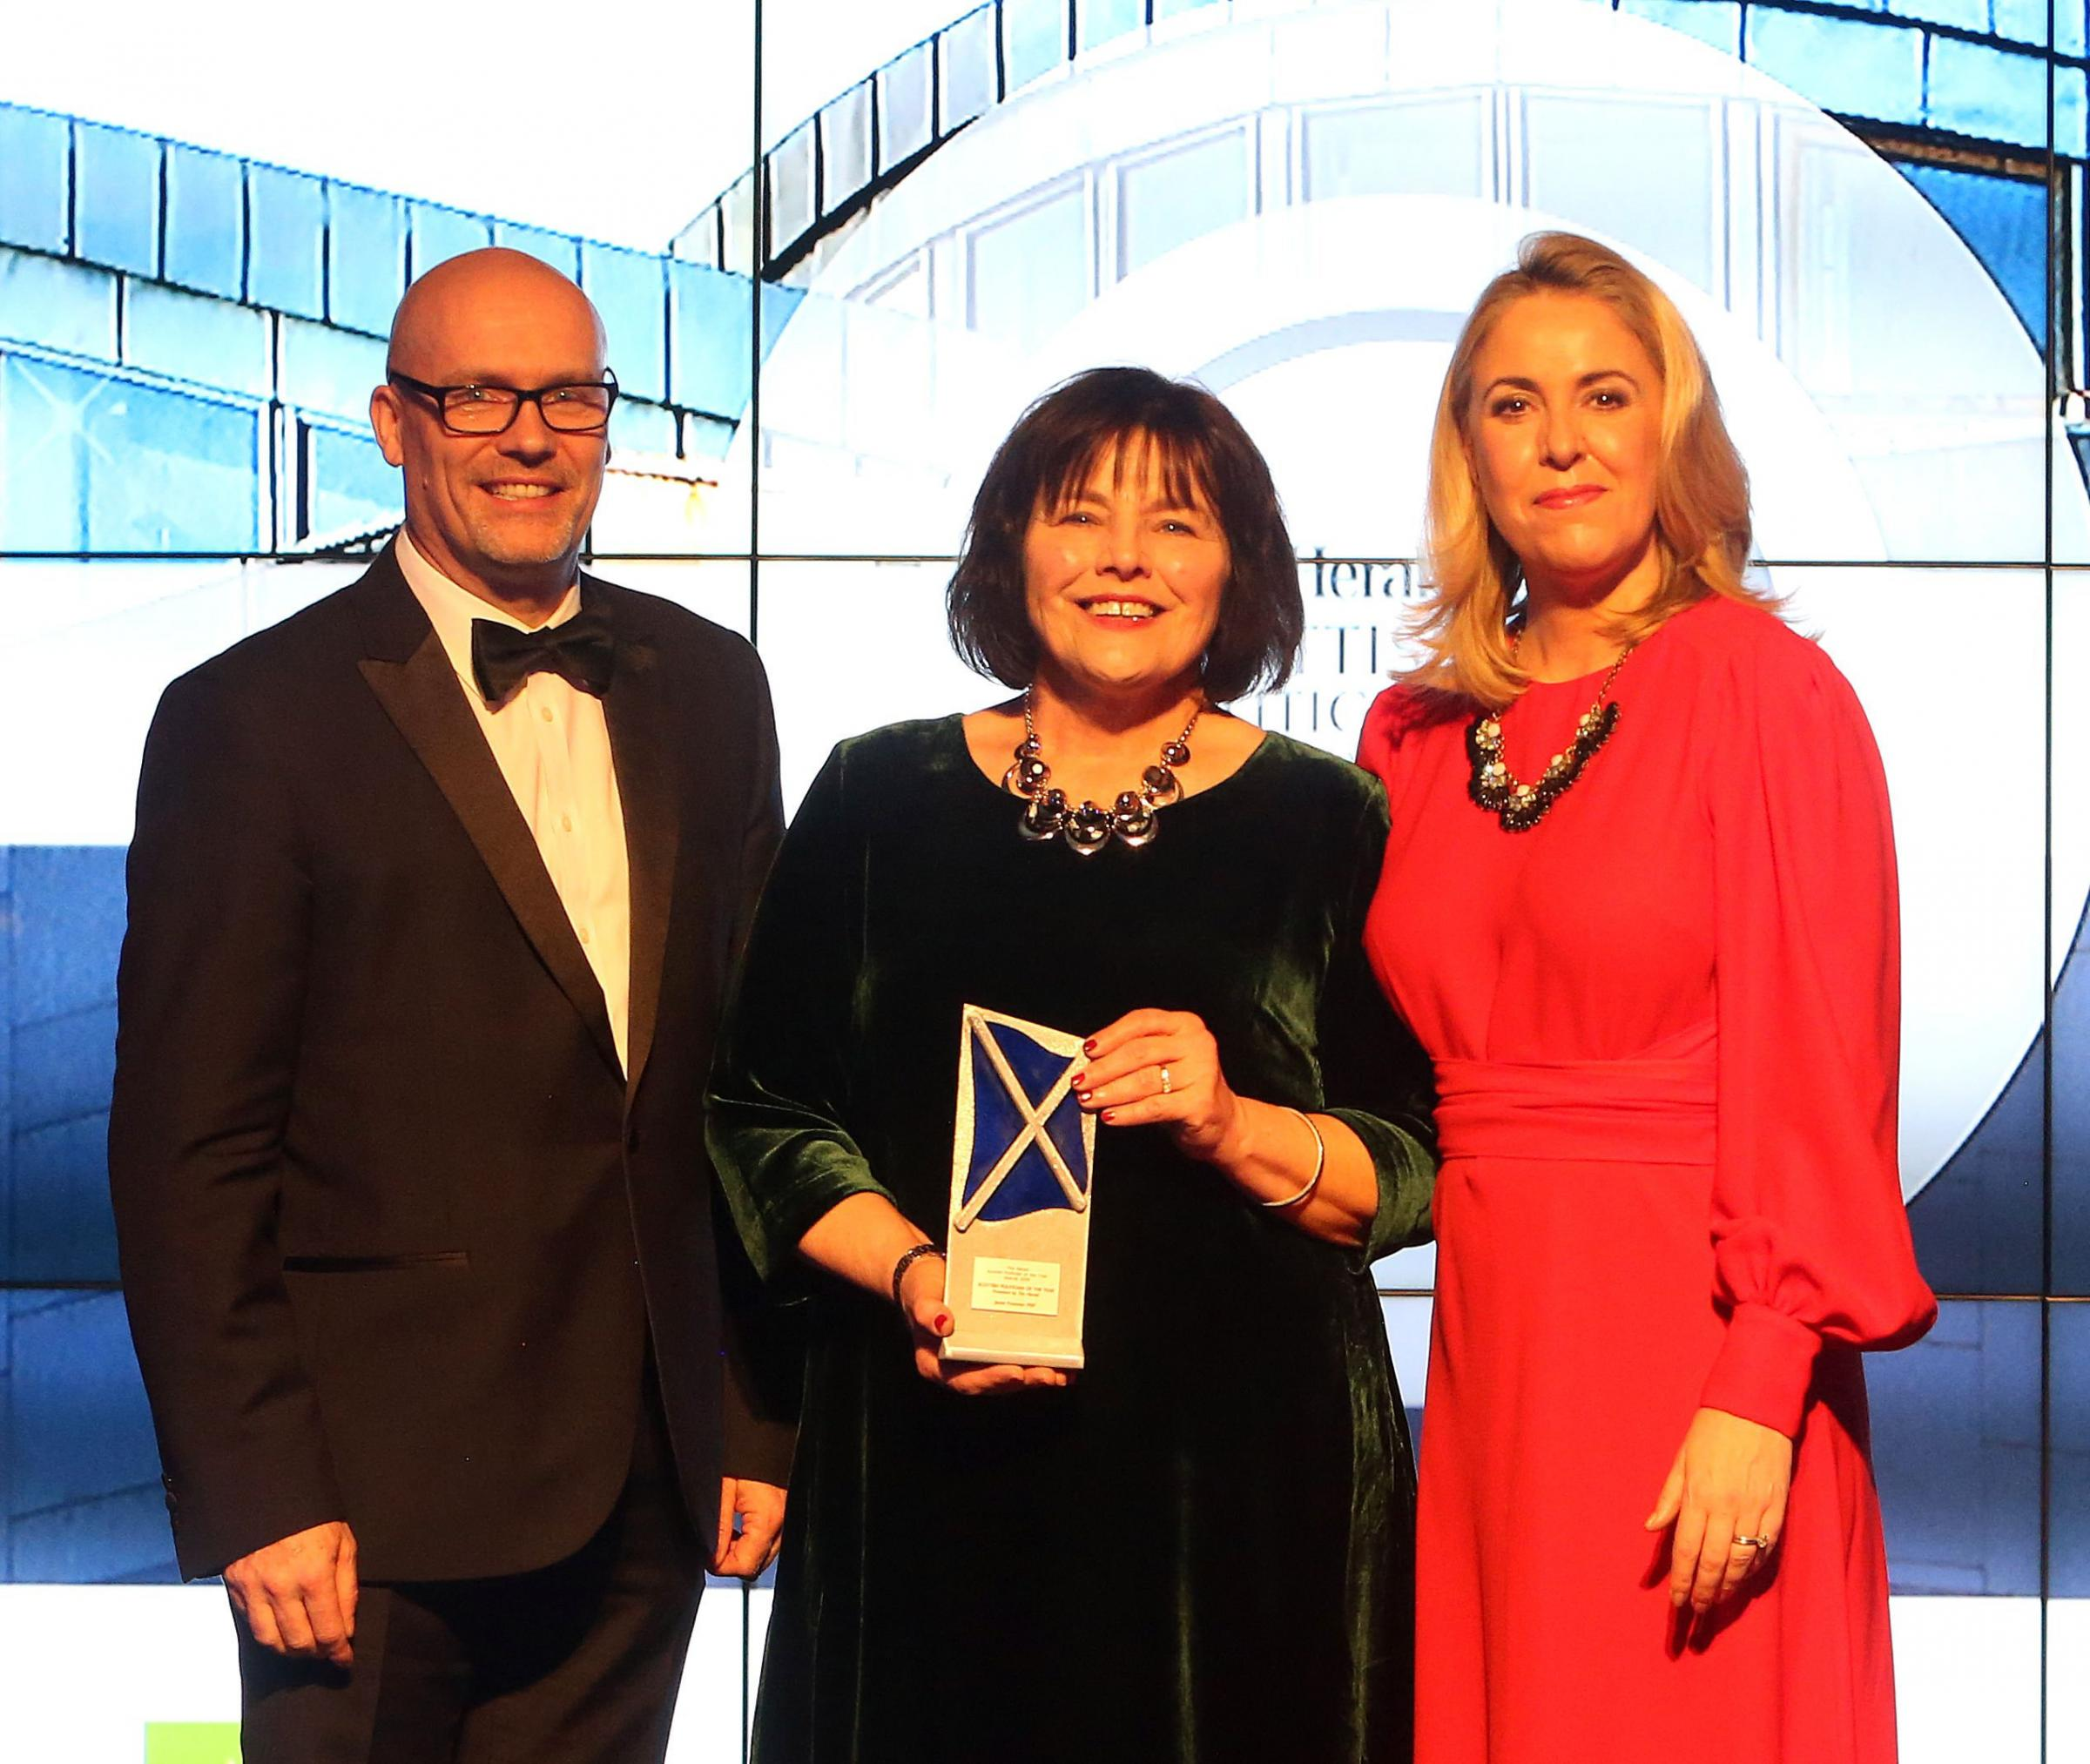 Nominations sought for 2019 Scottish Politician of the Year awards